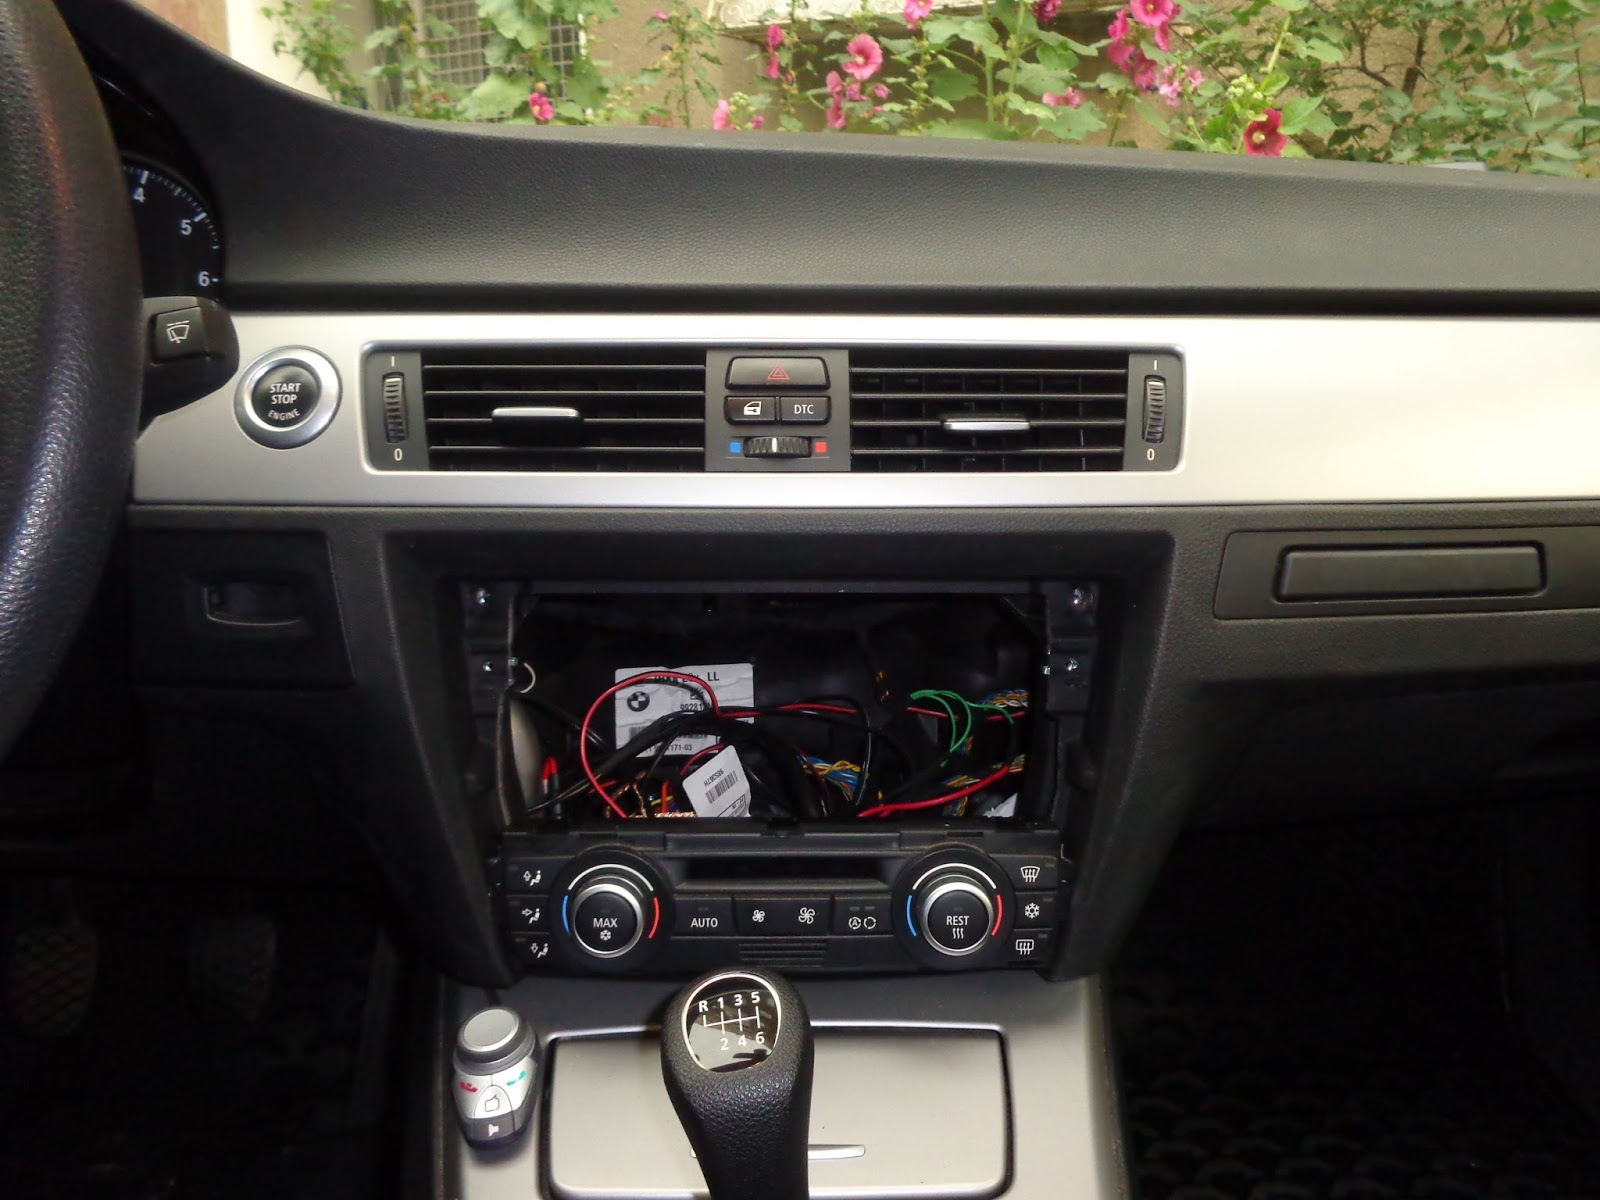 Engineering(DIY): Car PC project(August 2013 update)